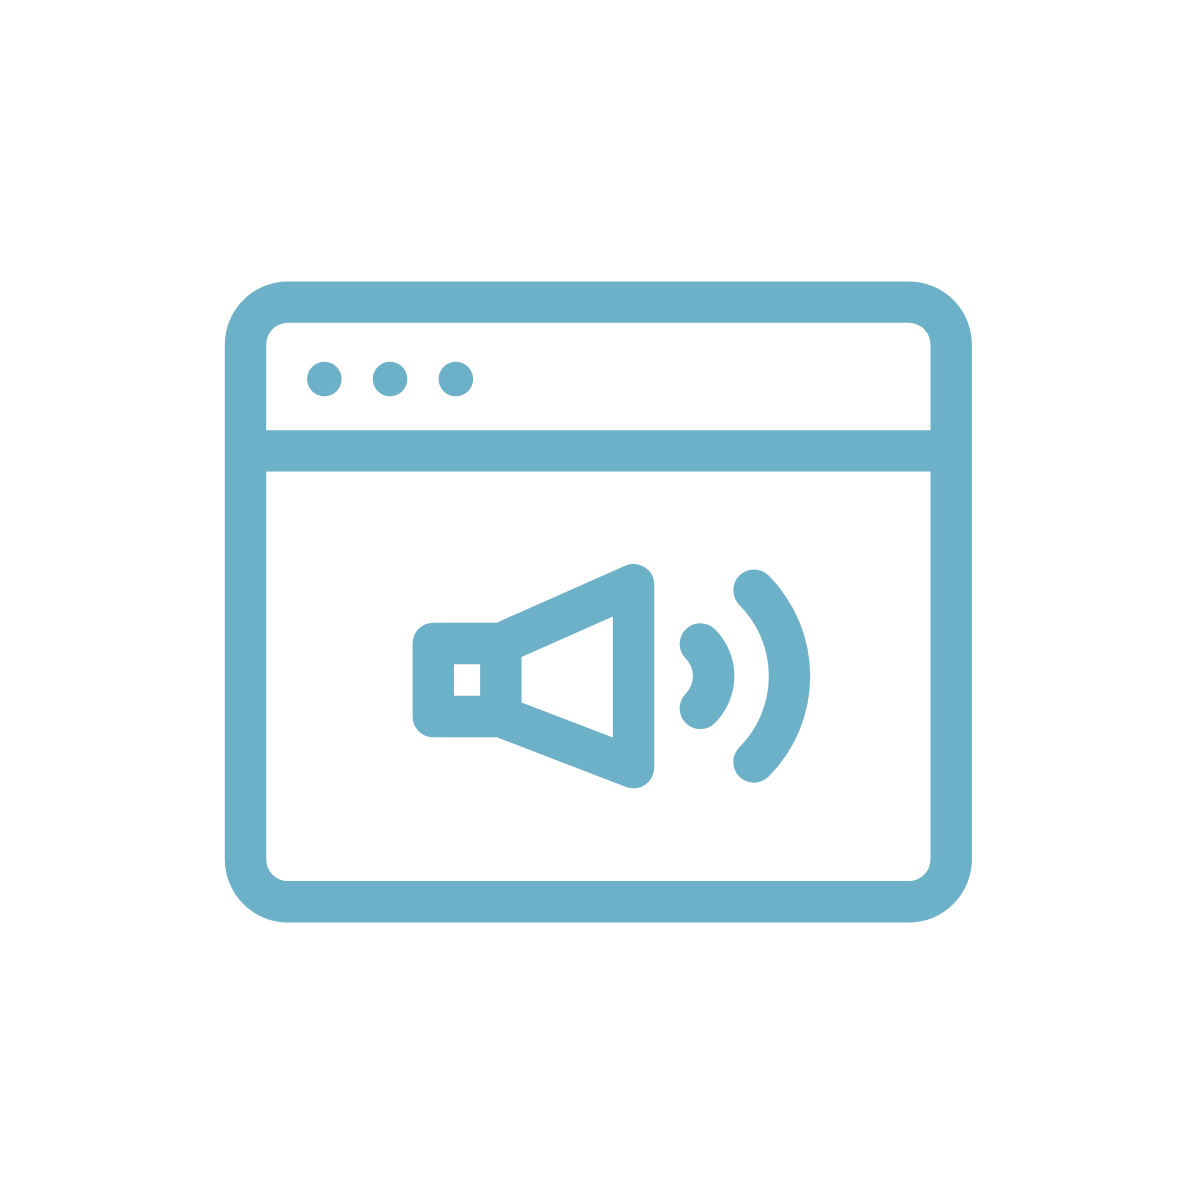 Sounds & Noises - Identify key moments in the audio, including music, narration, applause , call to prayer and other sounds.